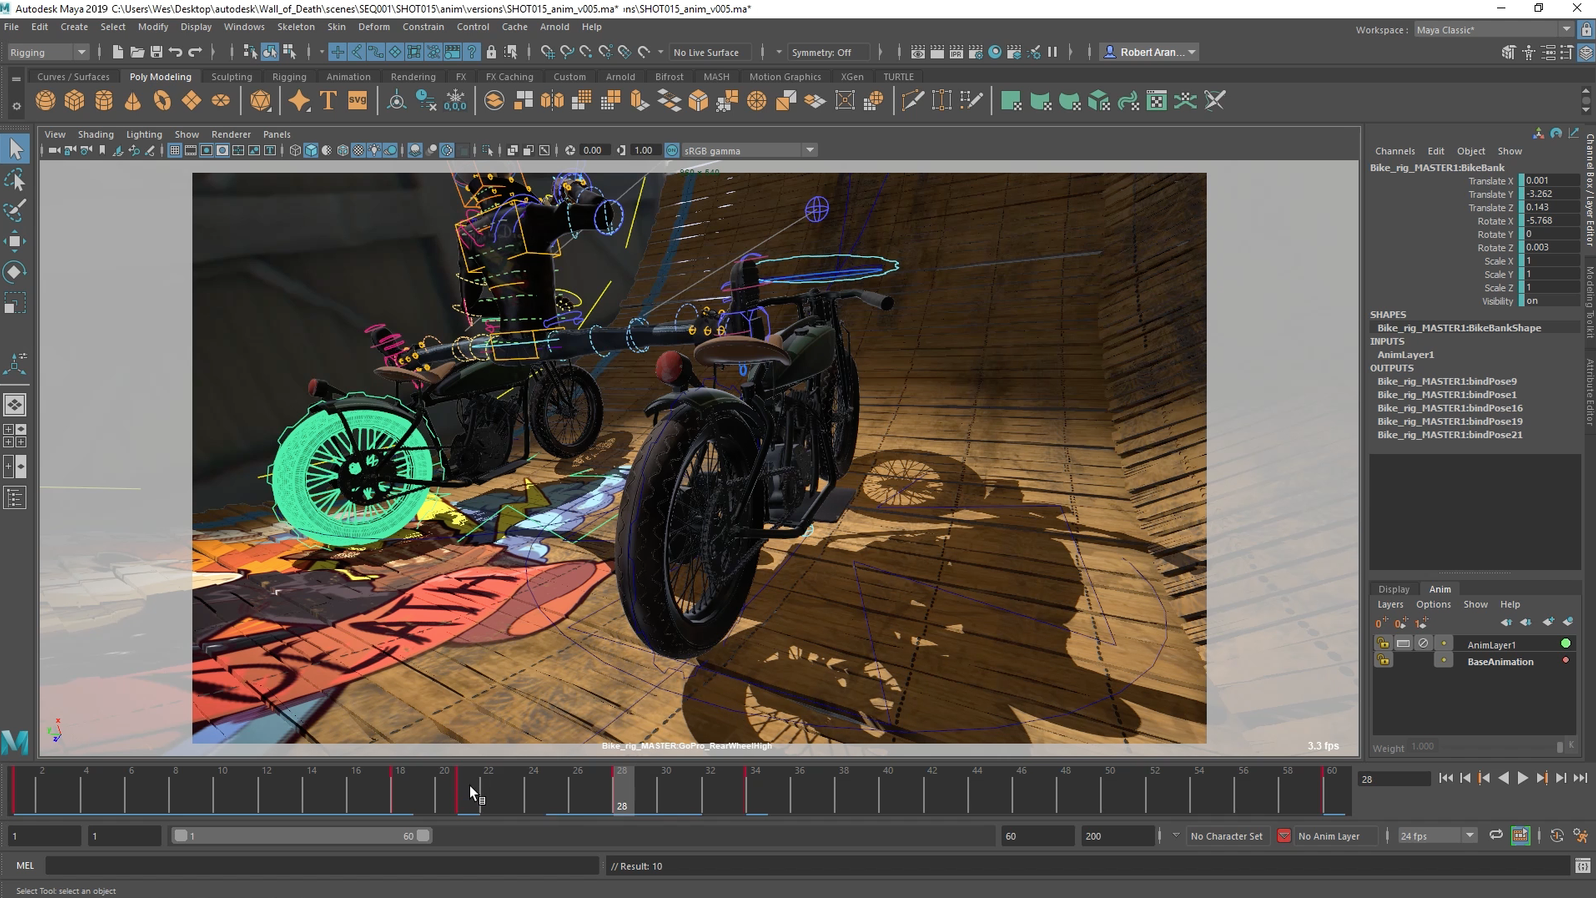 Autodesk Releases Maya 2019 with Faster Performance and Better ...